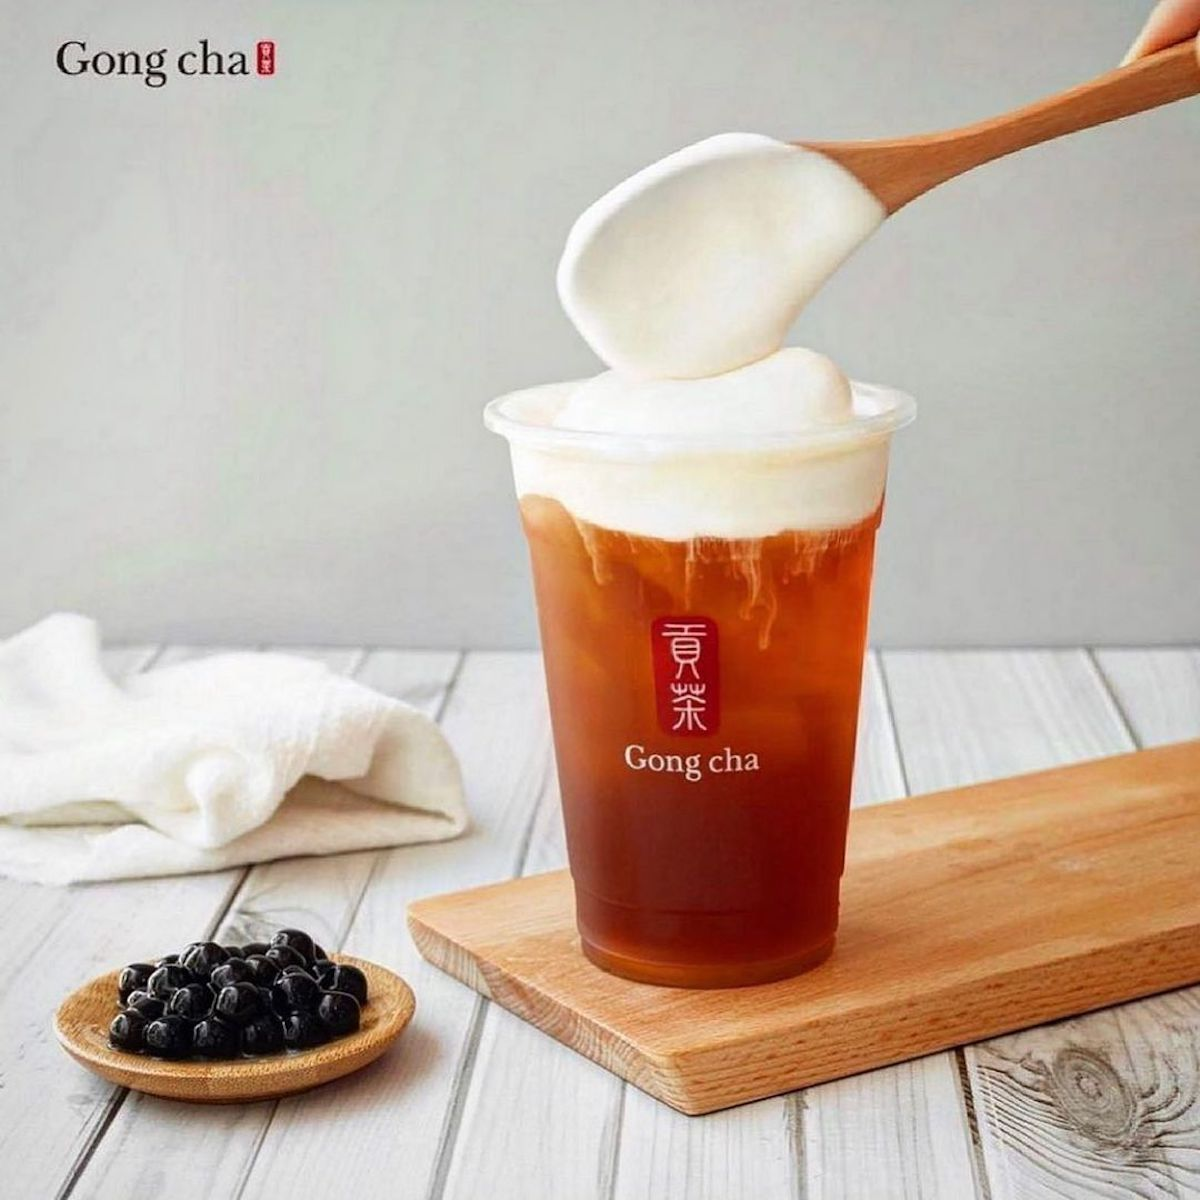 Gong Cha to Open First Corporate-Owned U.S. Store in Naperville